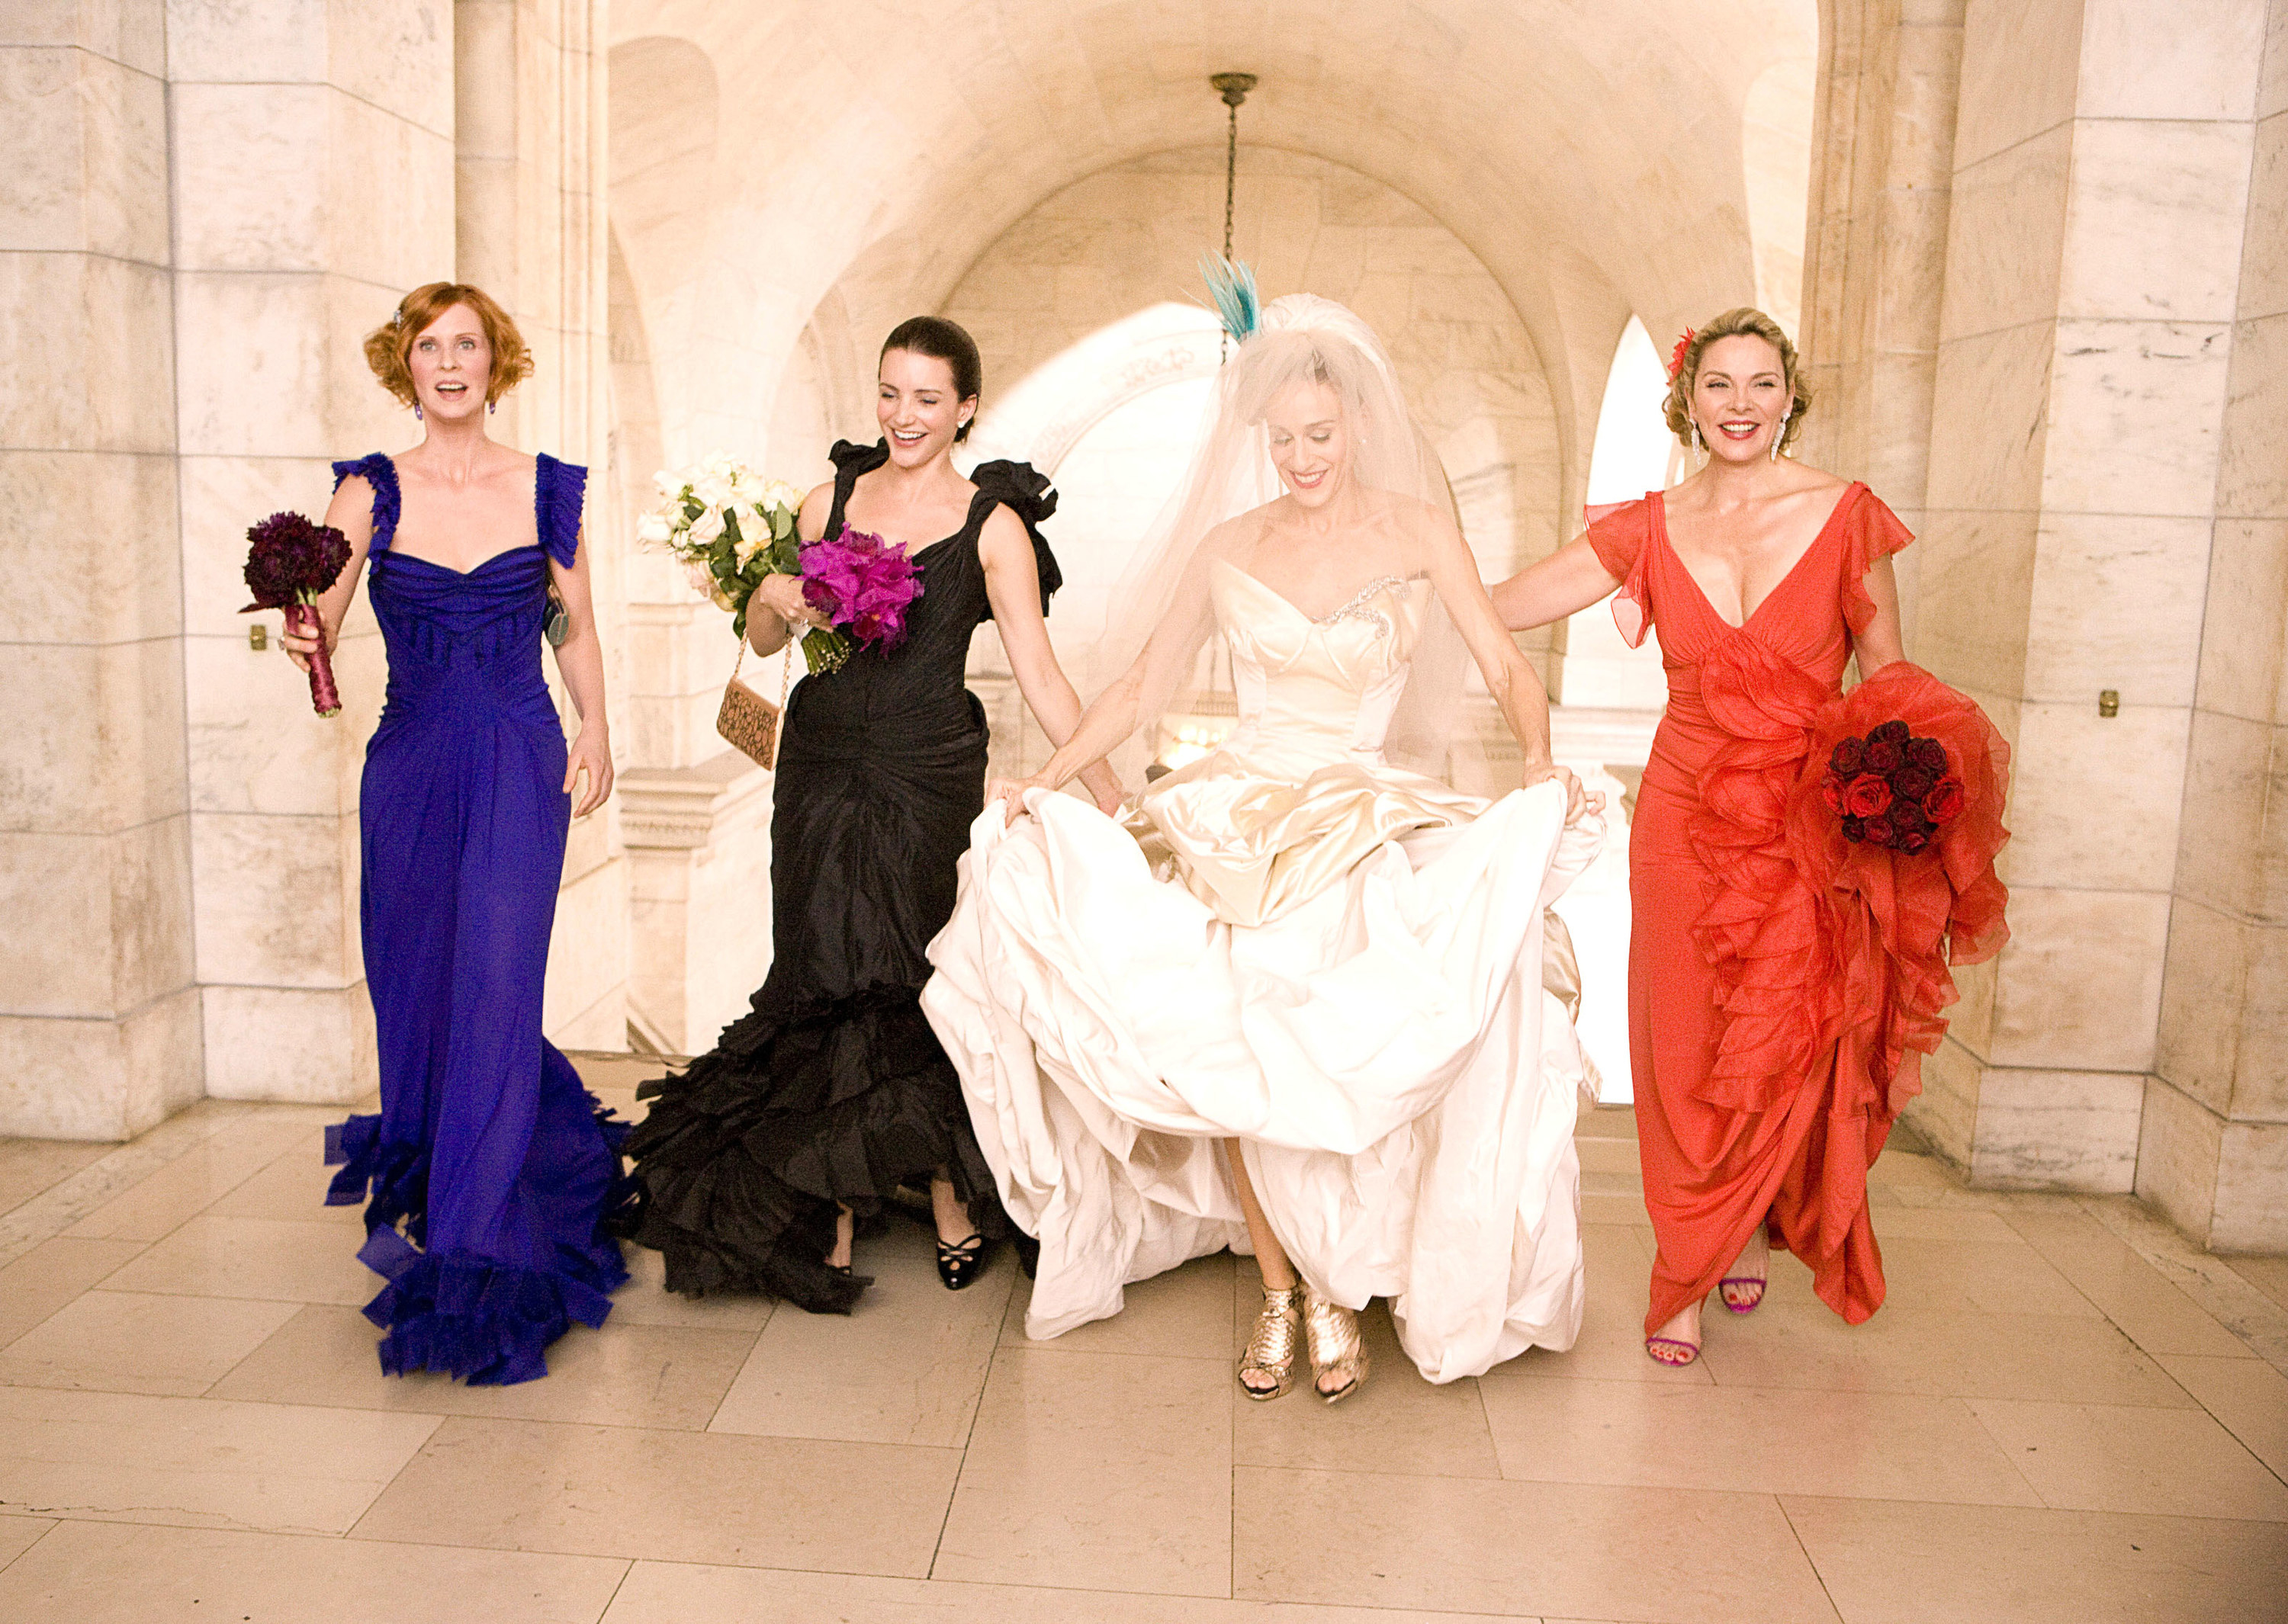 The women from Sex and the City in their formal wear for Carrie's wedding in the first movie